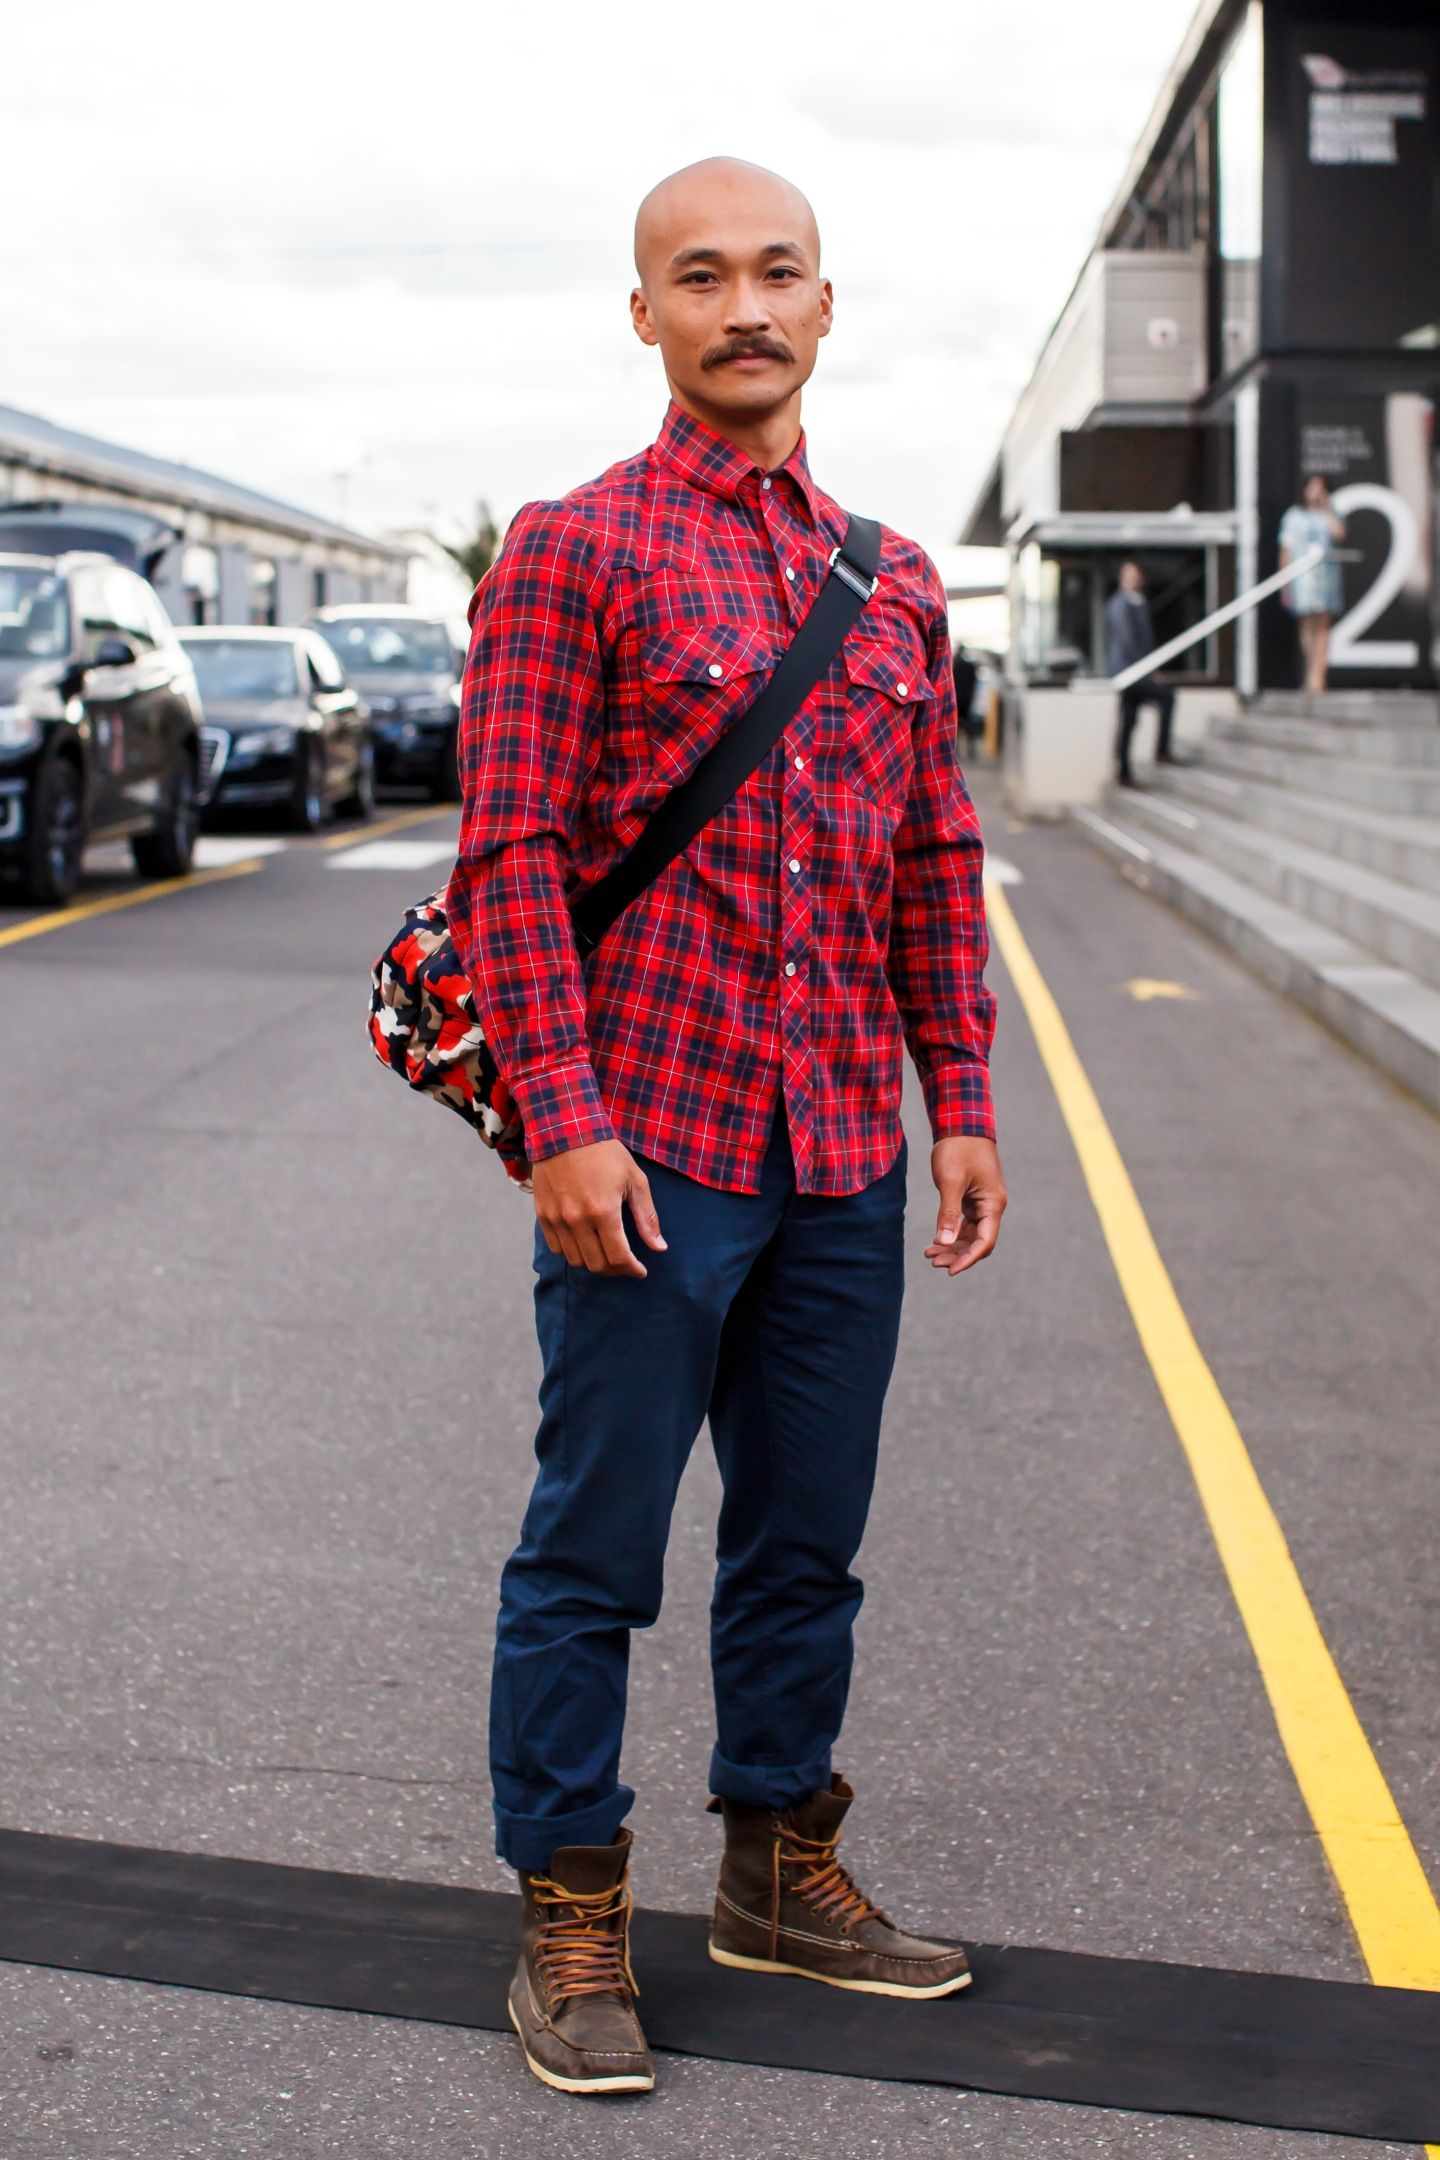 Below Is An Exle Of How I See The Eastland Boot Styled On Regular Bases Blue Denim Jeans Plaid Up Thermal Shirt And Added In My Own Way